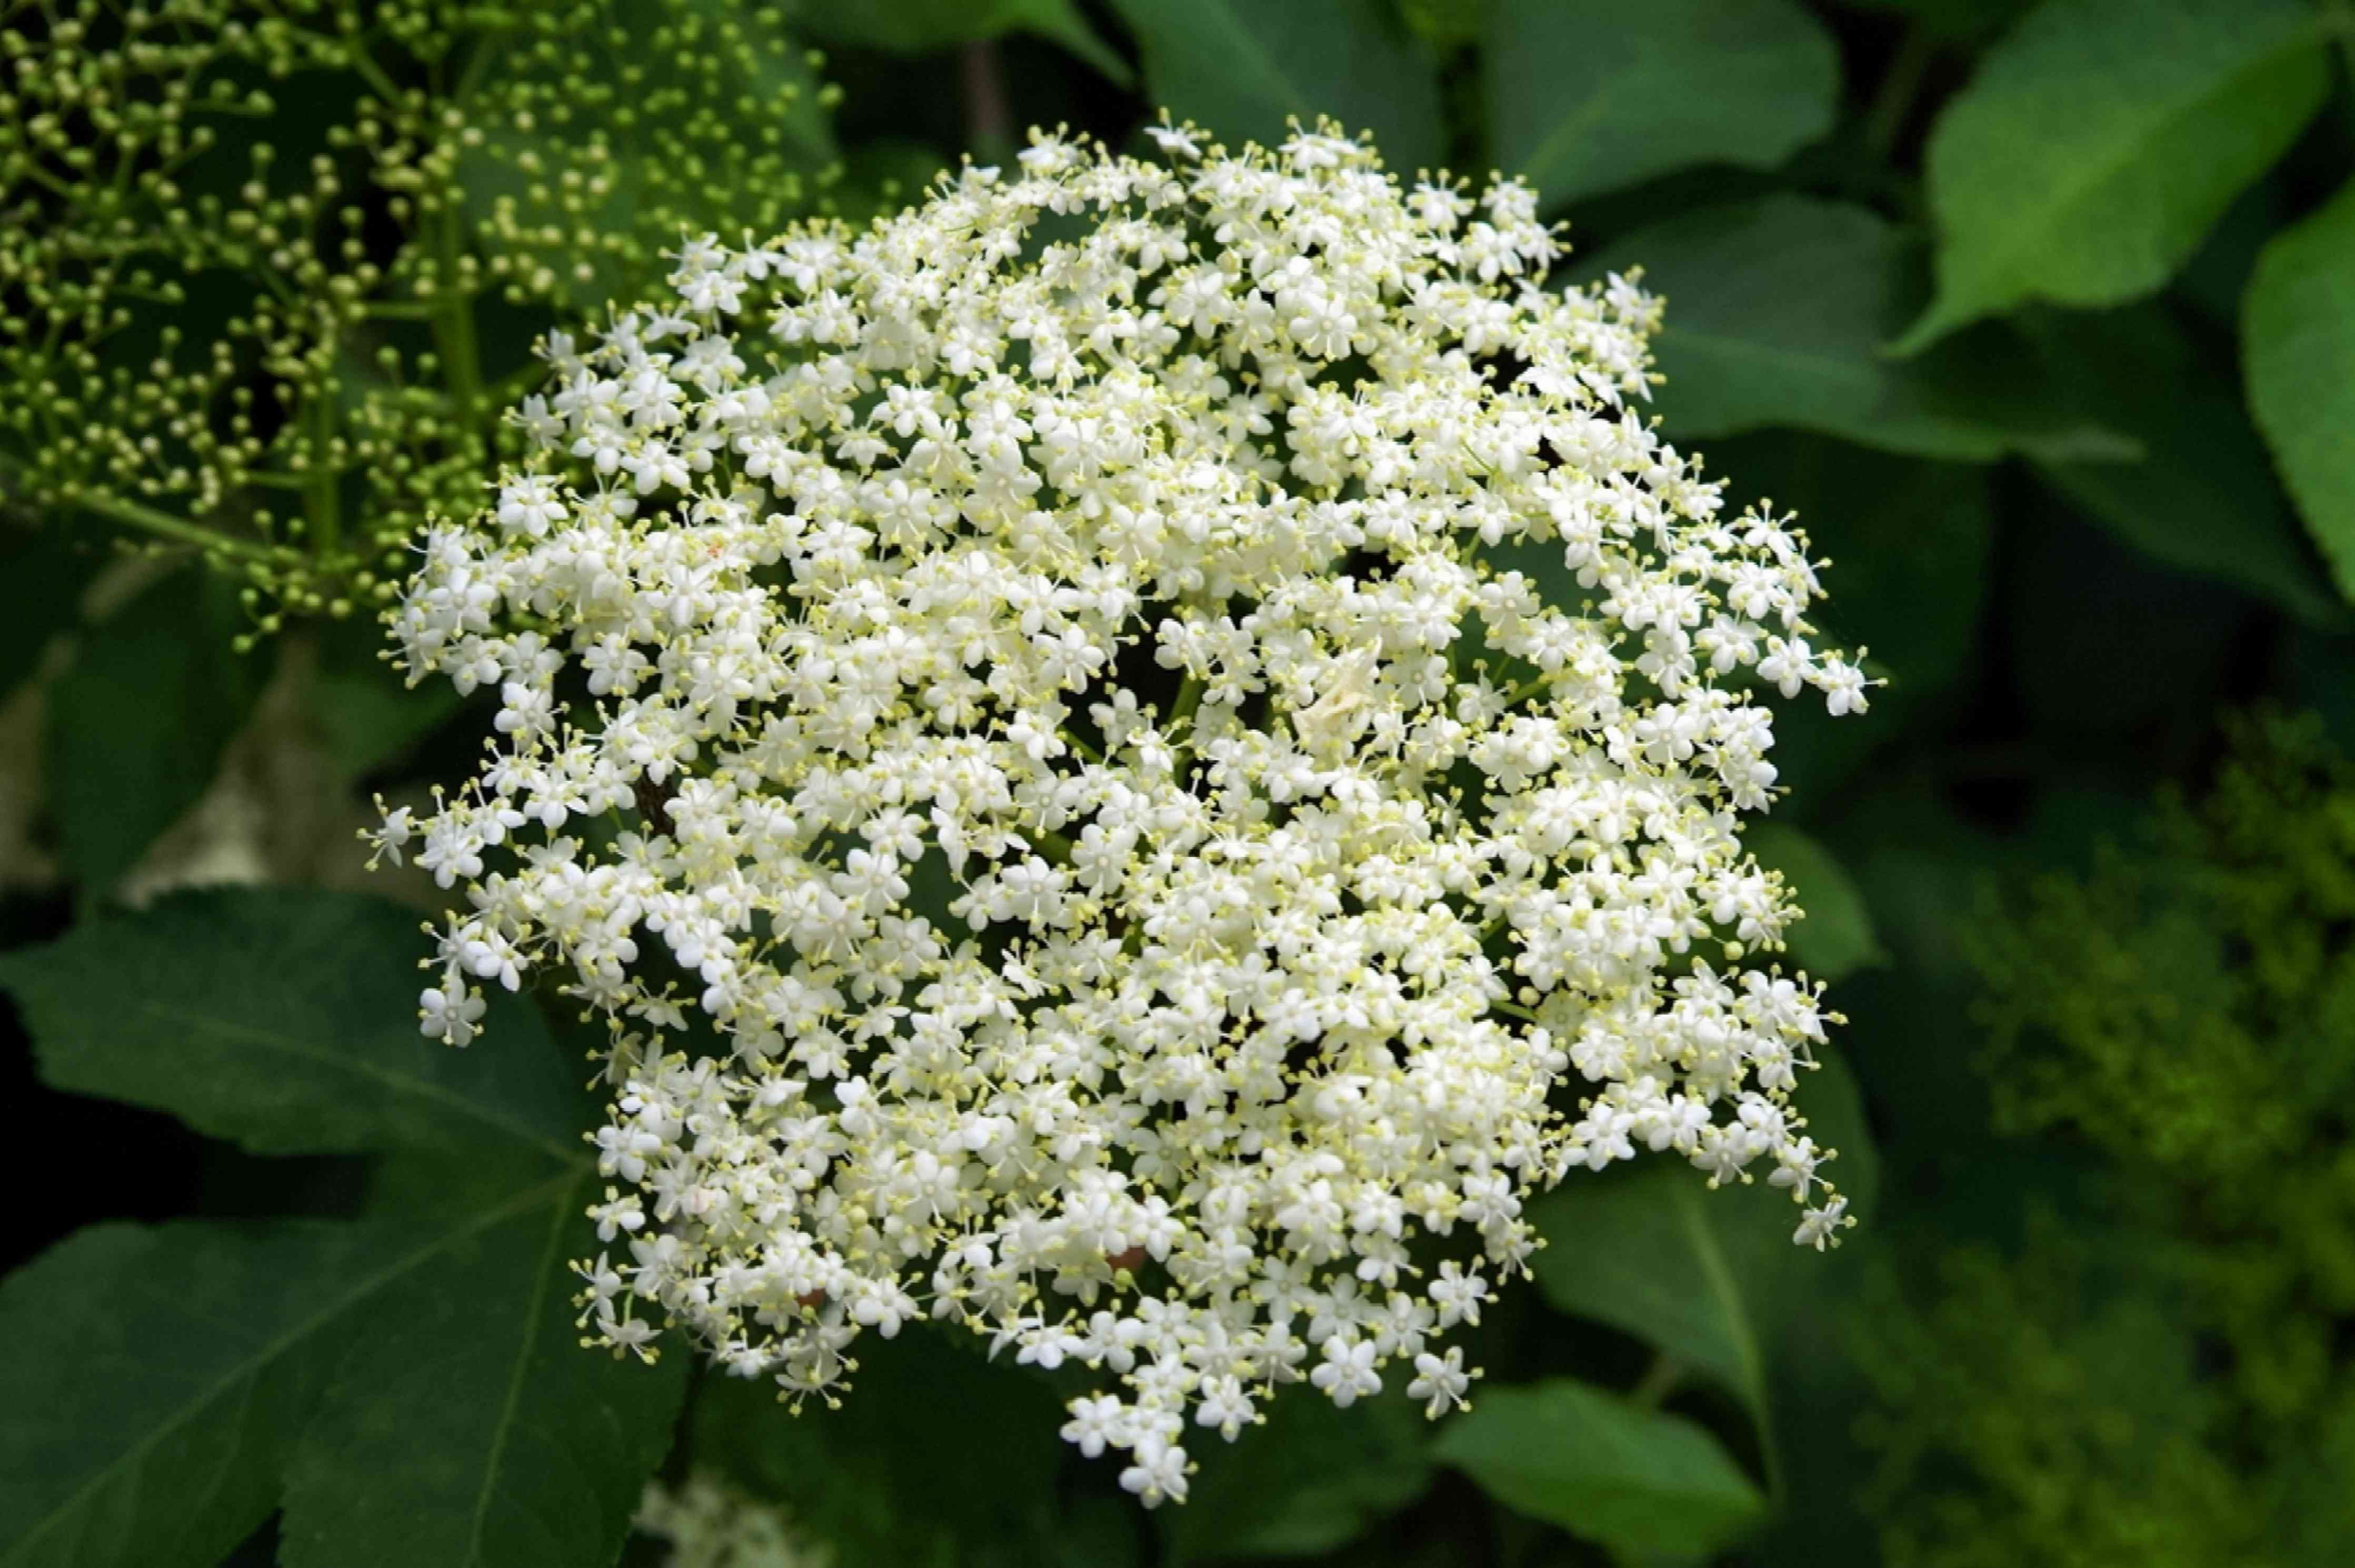 Common elderberry plant bright white flowers clustered together closeup